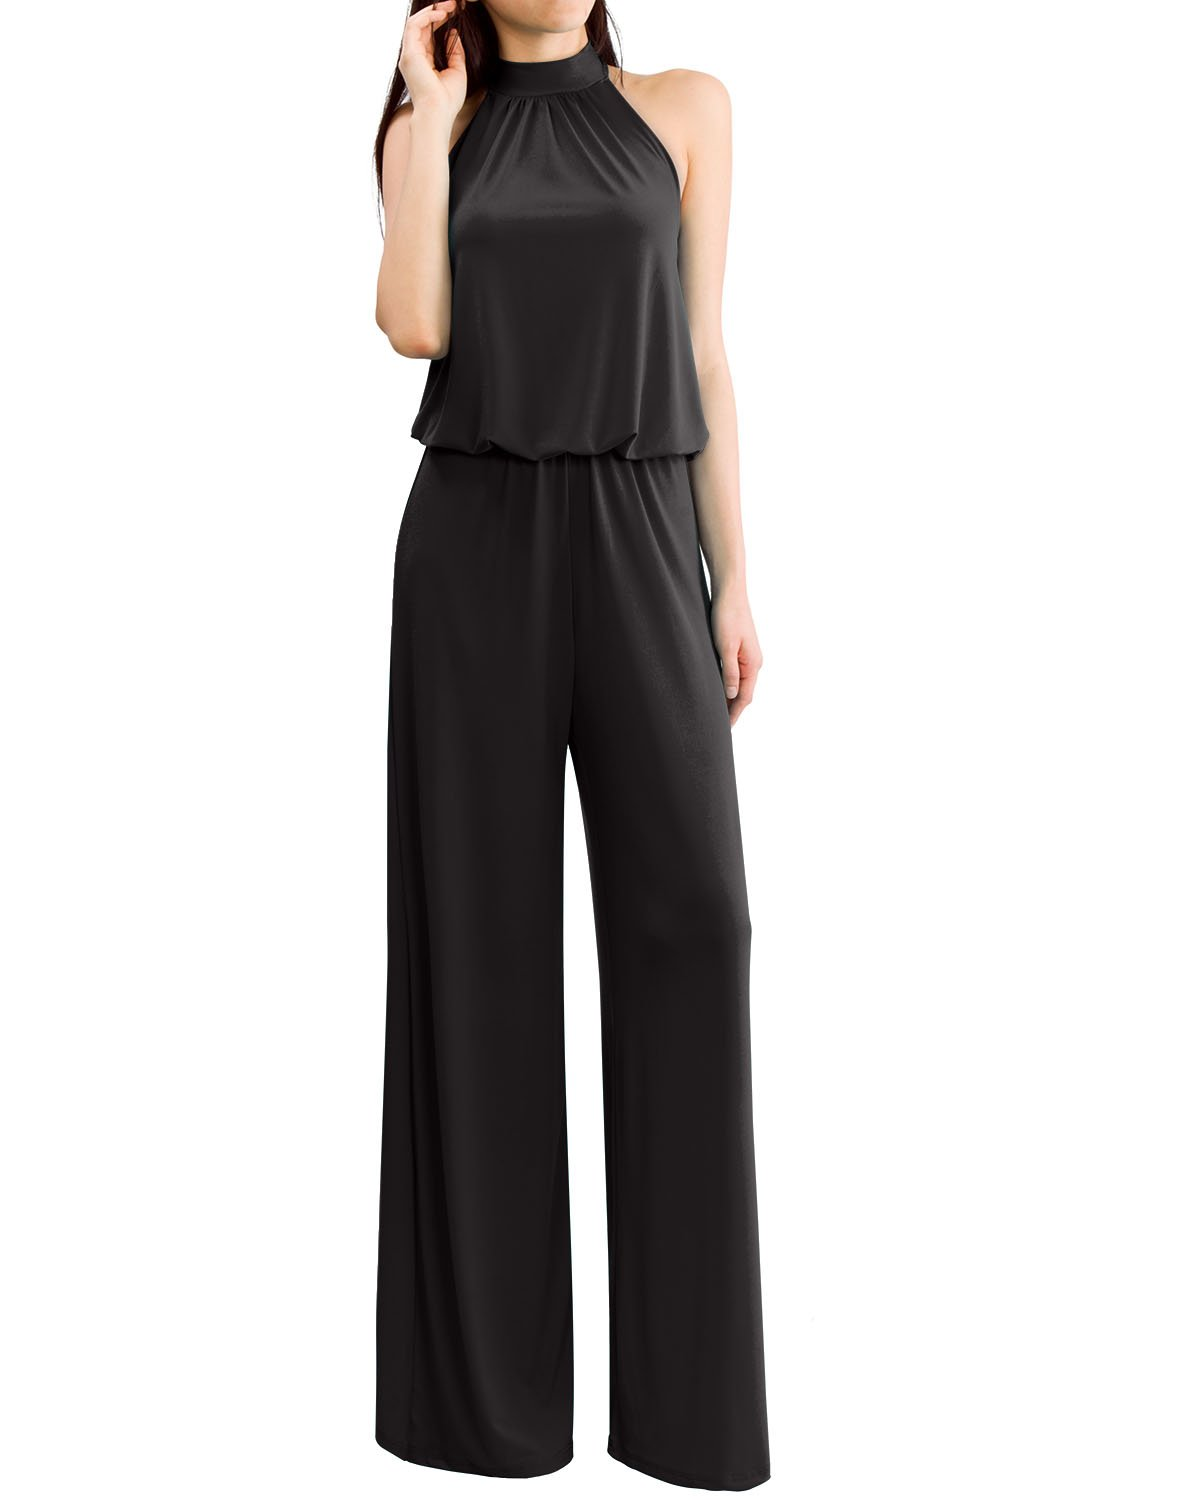 Women's Sleeveless Mock Neck Tie Back Solid Jumpsuits and Rompers